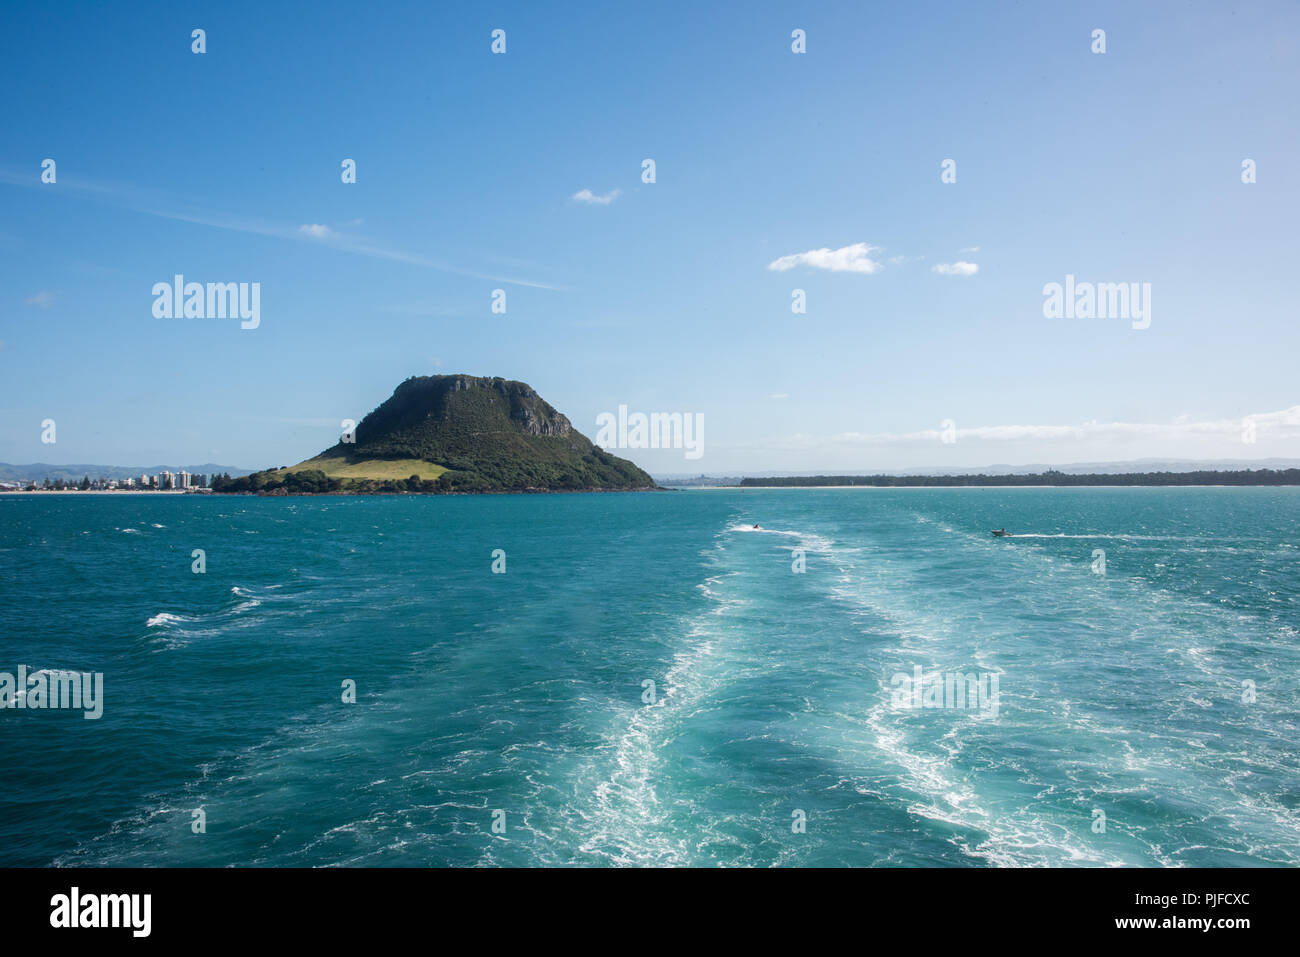 View of Mount Maunganu and the waterfront from the harbour in Tauranga, New Zealand - Stock Image